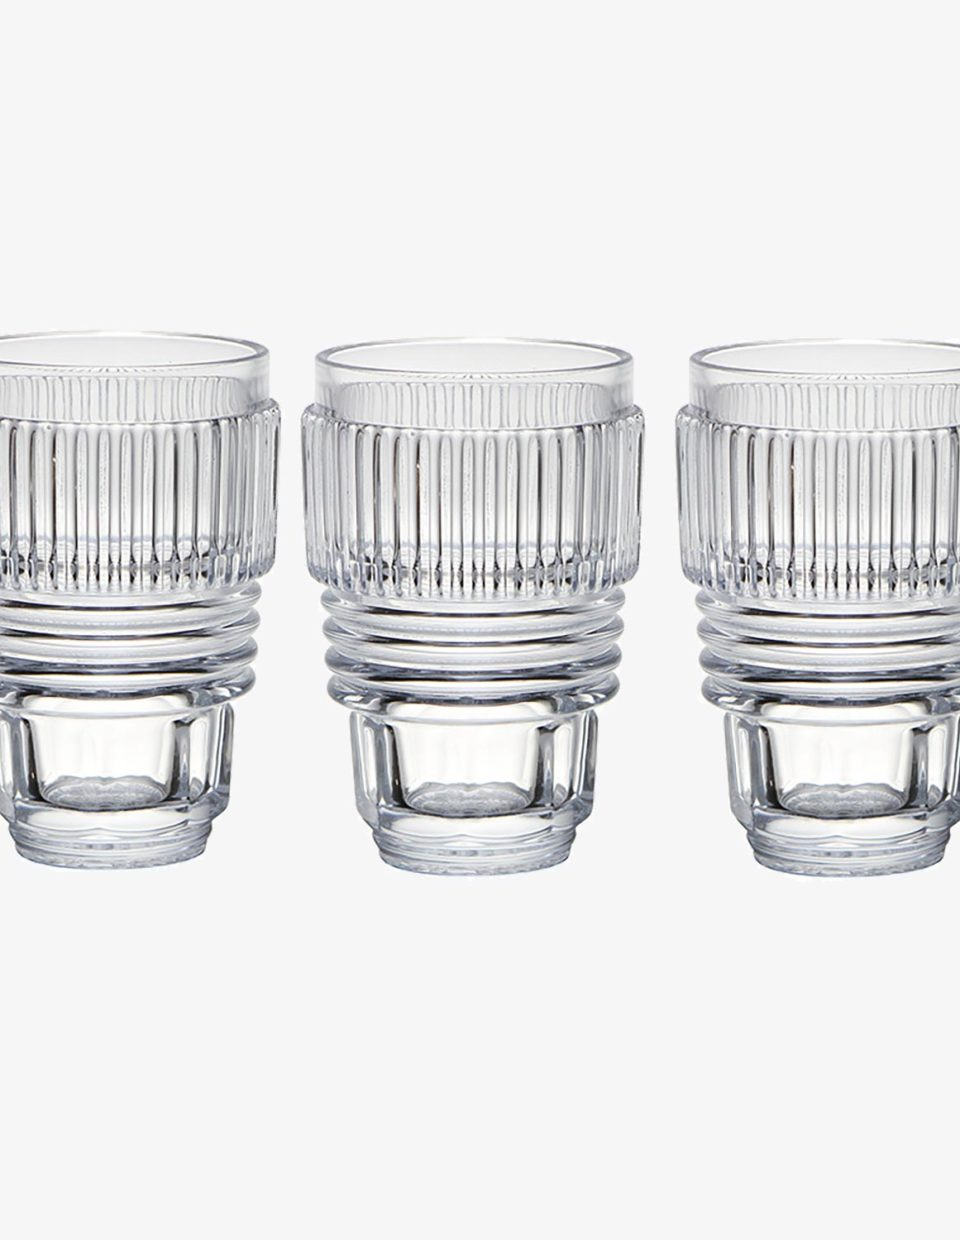 Diesel by Seletti Machine Collection – Glassware, Set of 3-26381